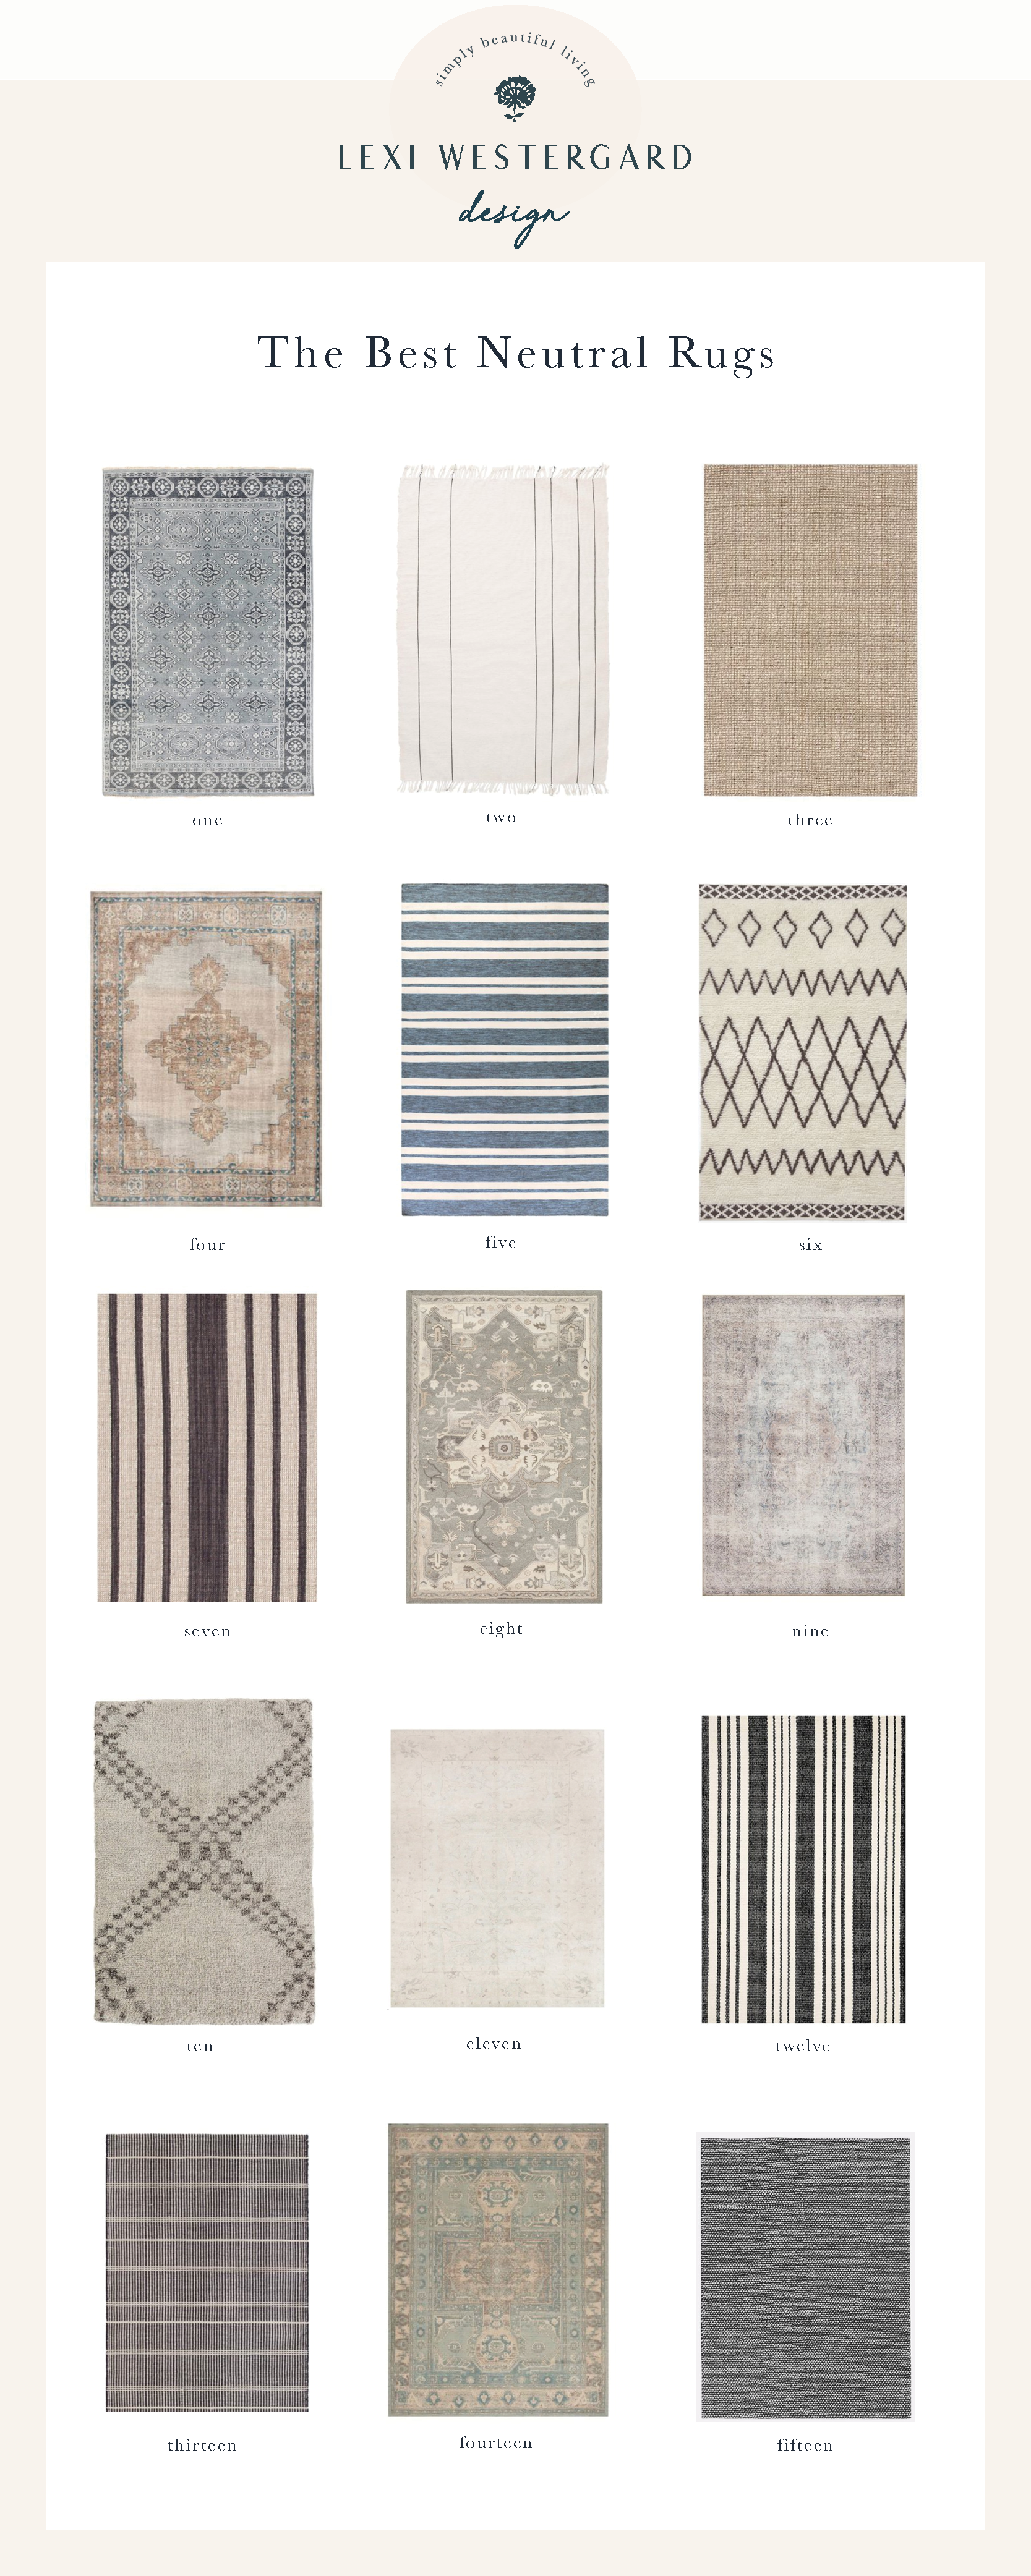 Lexi Westergard Design's Guide to Rugs including the best materials, sizing, care and maintenance. Shop our favorite neutral rugs on the blog.